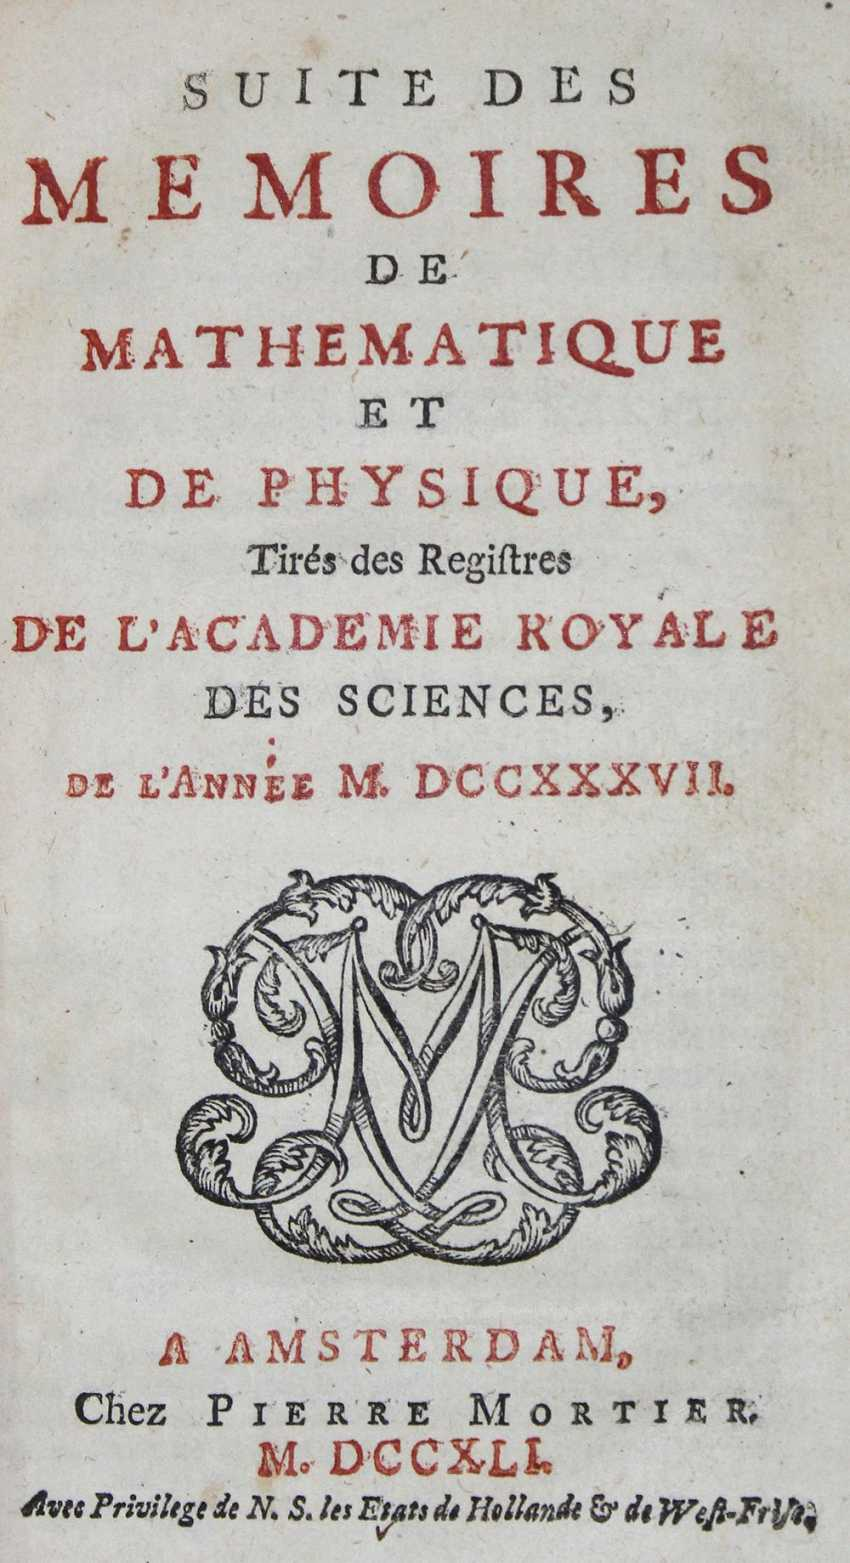 Memoirs of the Academie Royale des Sciences. - photo 1